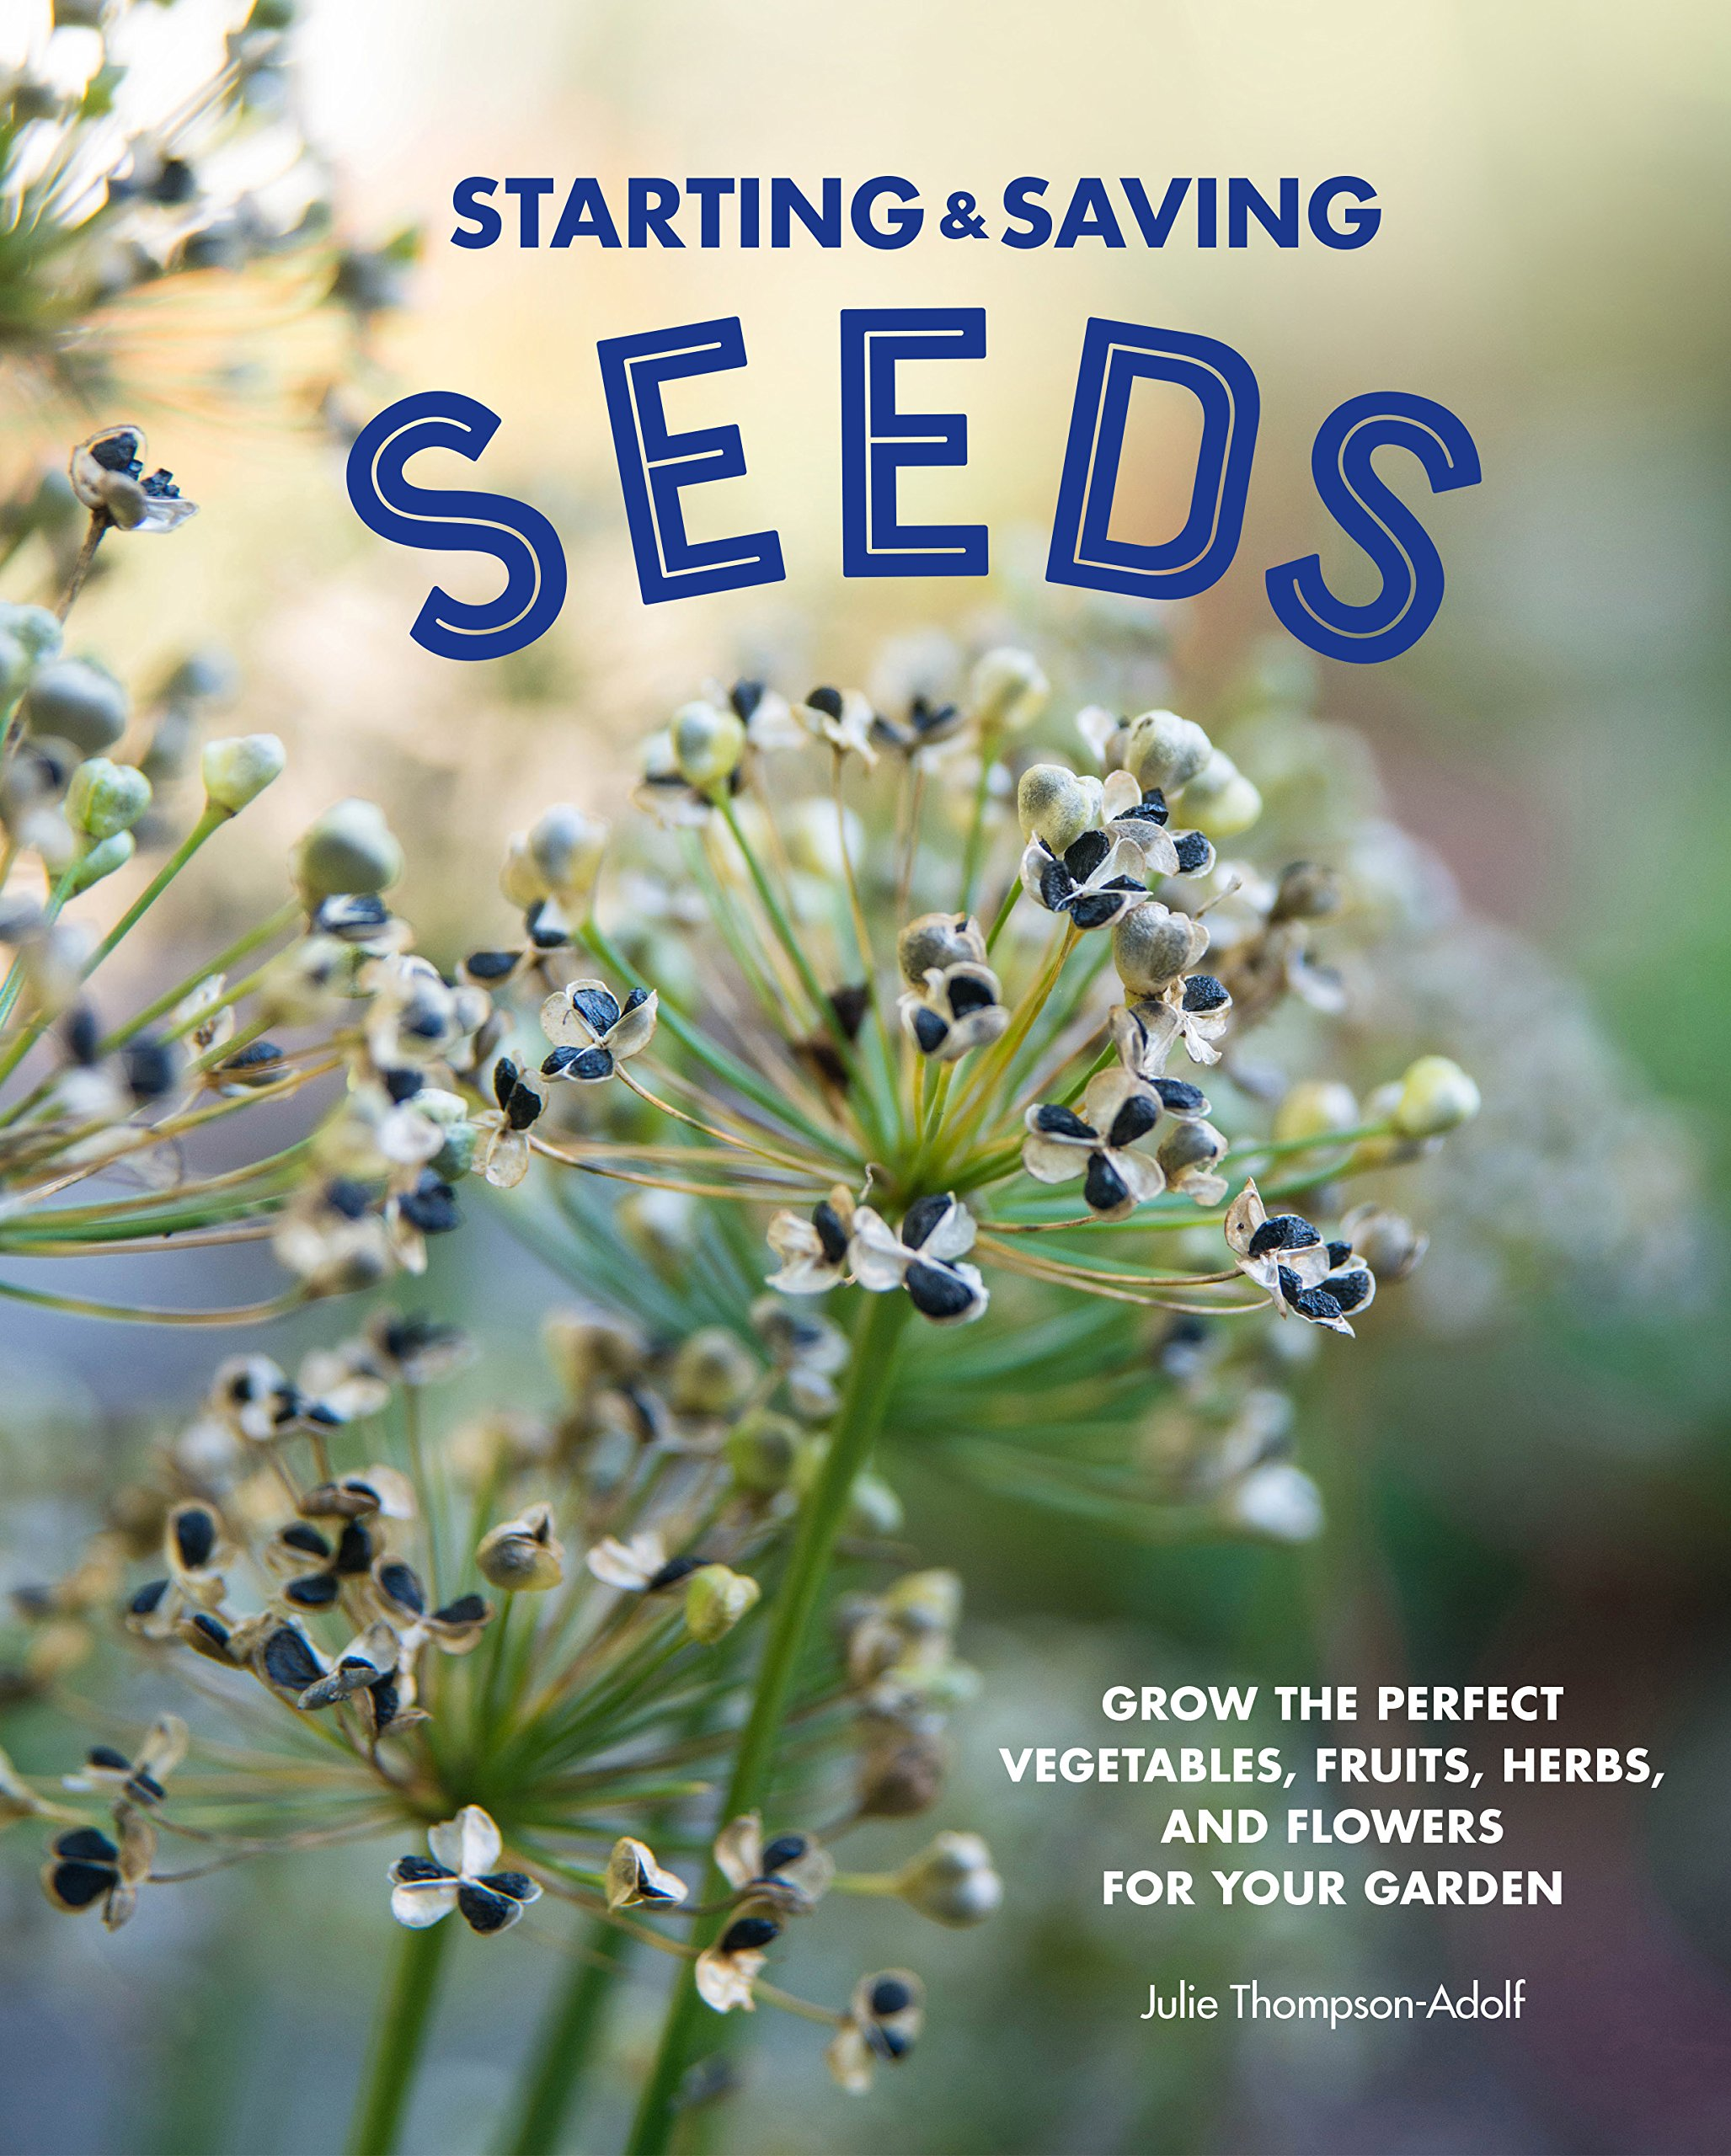 Starting & Saving Seeds: Grow the Perfect Vegetables, Fruits, Herbs, and Flowers for Your Garden by Cool Springs Press